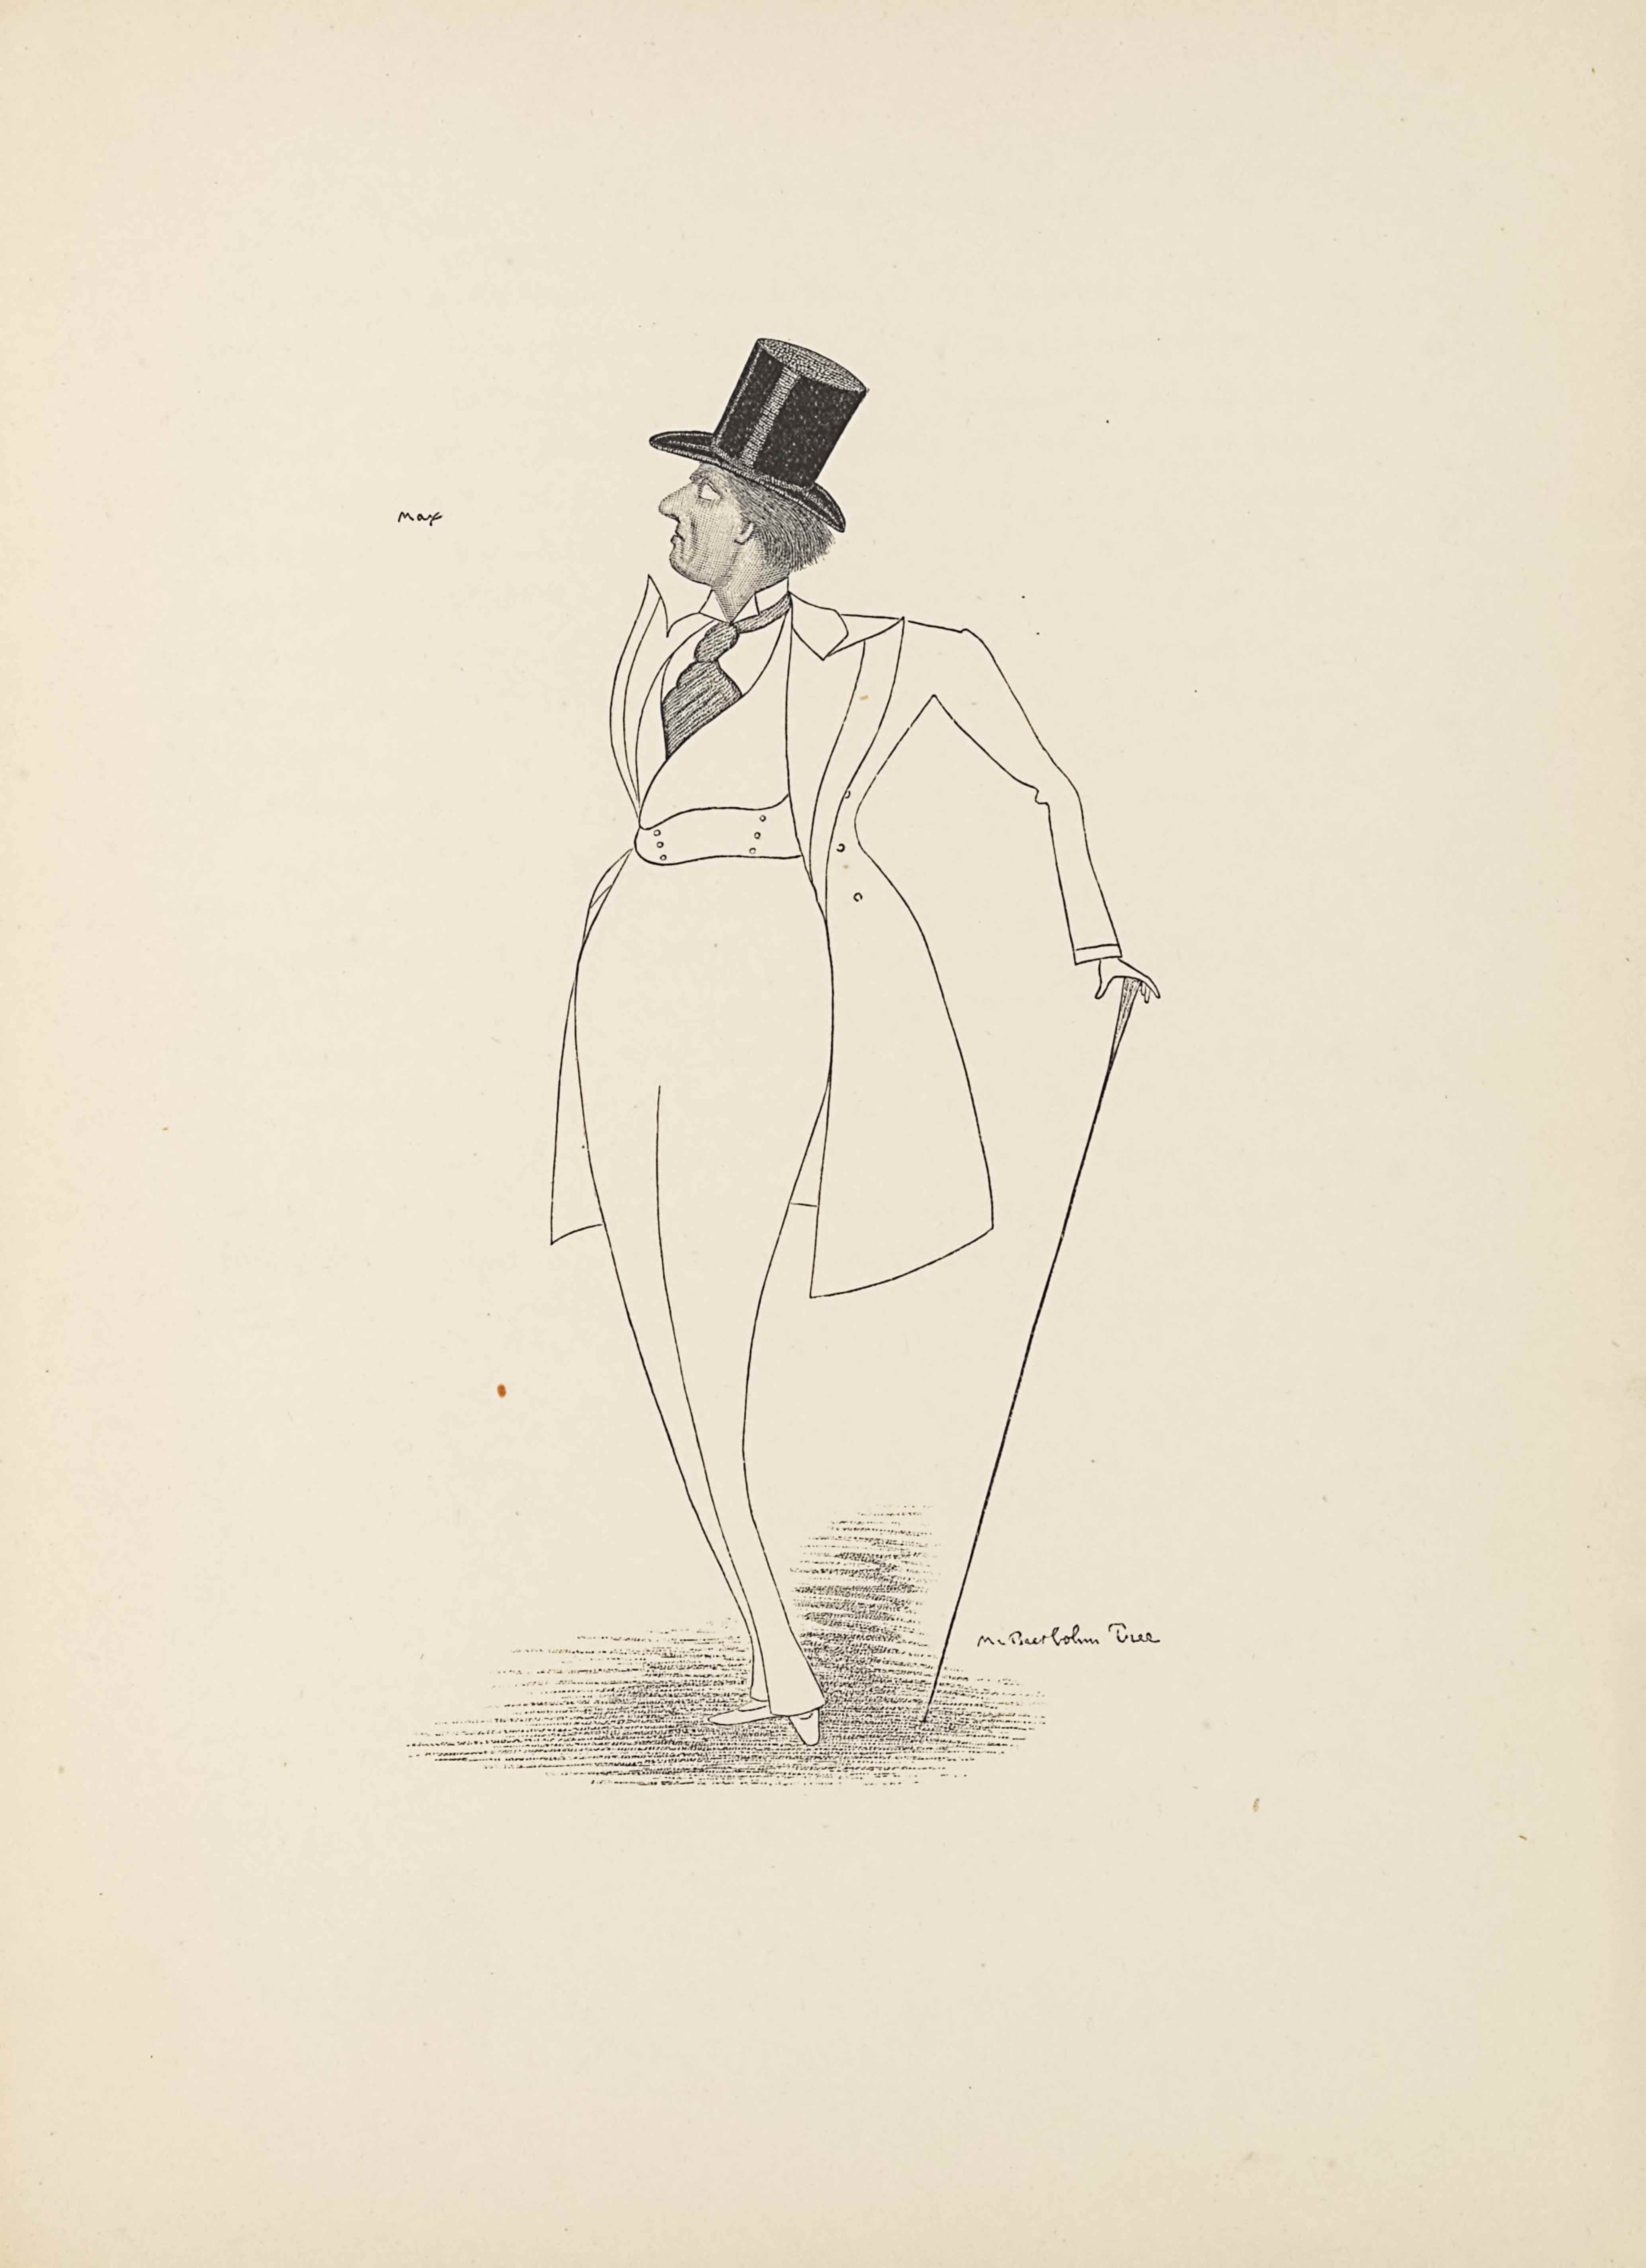 """This wood engraving of a drawing is borderless and in portrait orientation. A full-length caricature of a man stands centrally, with no background or setting. The man is turned slightly to the left of the page, but his head is turned even further to the left, showing the profile of his face. He is wearing pointed-toe shoes and plain pants. His legs are long and his upper body is short. His legs are thin at the ankle and grow wide at the hips. On top he is wearing a collared shirt with a large, dark tie and a vest over top both of those pieces. At the waist the vest has three rows of two buttons that are lined up vertically. He also wears a long open overcoat, which is tailored in at the waist and has three buttons. The coat has a large collar and tight sleeves. The man's left arm is lifted up and out at his waist and holding a walking cane leaned diagonally up to the right from the ground into his hand. The man's right arm is pulled behind his back and not visible. The face in profile shows the man frowning with a chin tilted slightly up to the left side of the page. His brows are furrowed. His hair is short and he wears a large black top hat taller than his head. At the man's feet is slight shading in a circular area. To the left of the page, at the height of the man's nose, is the text """"Max,"""" which is the artist's first name. To the right of the cane in the bottom right corner of the image is the text: """"Mr. Beerbohm Tree""""."""